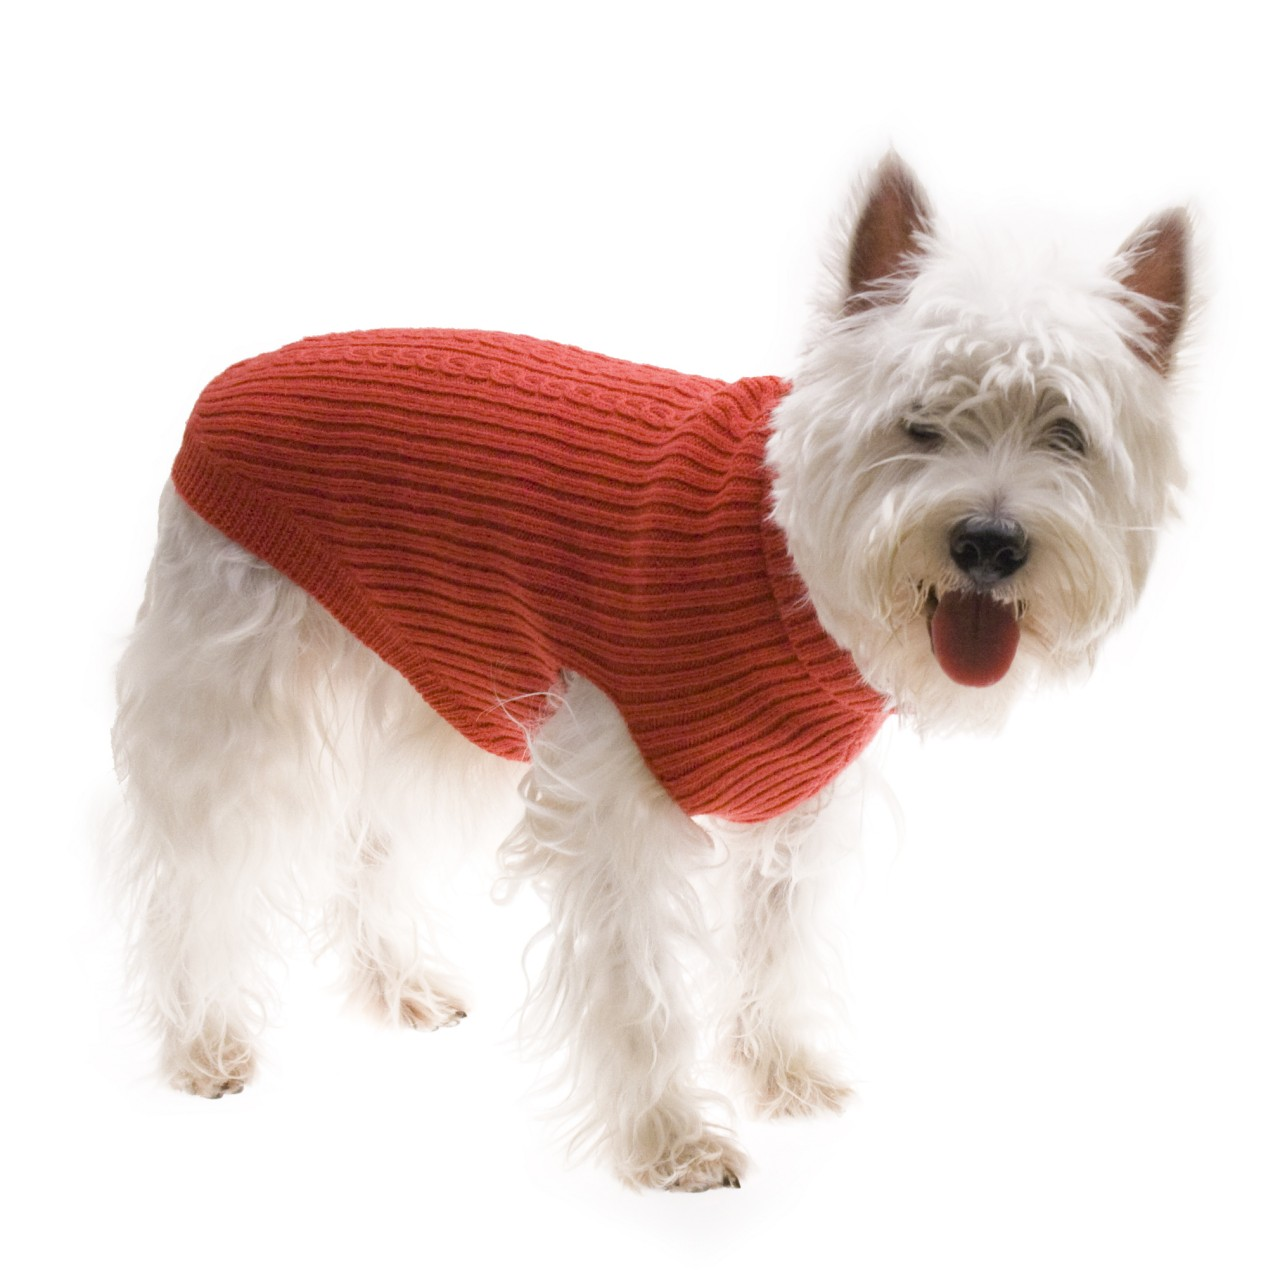 Dog Jumpers photo - 1